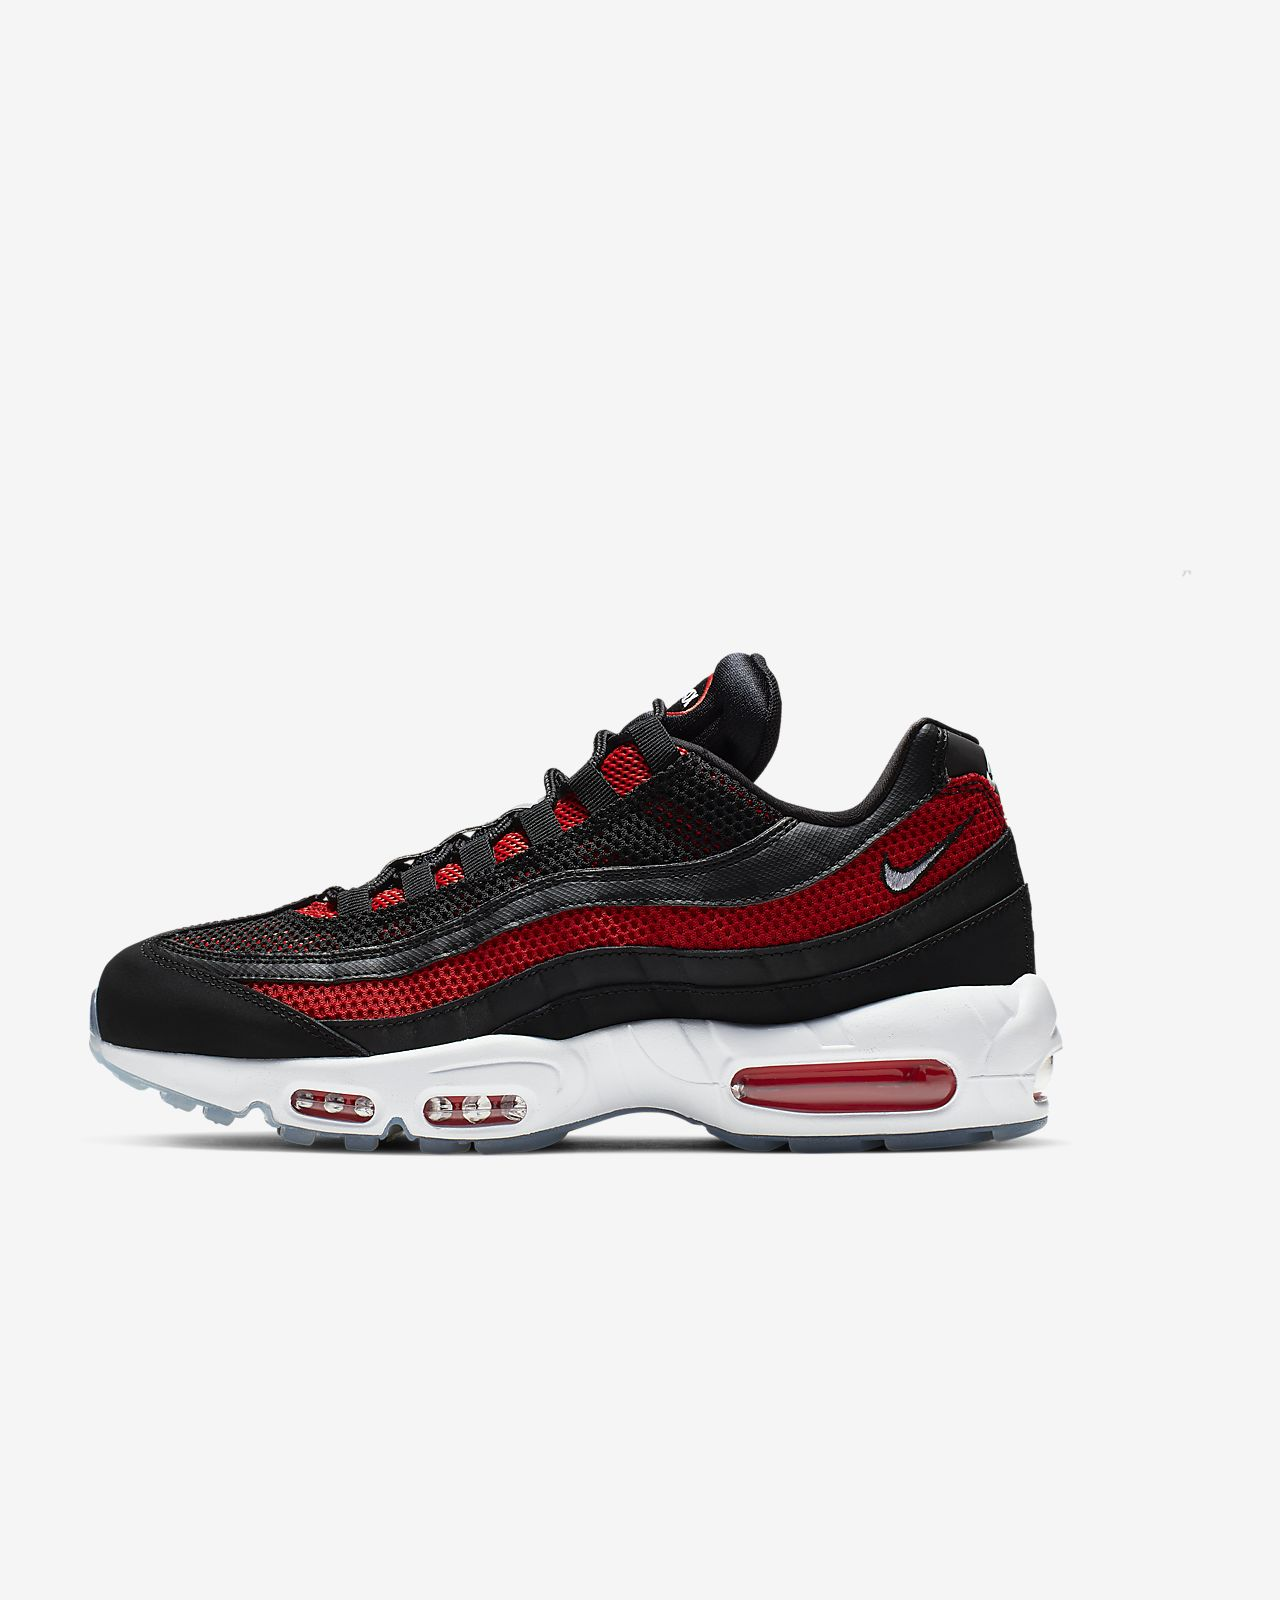 online retailer b2ac1 744cd ... Nike Air Max 95 Essential Men s Shoe